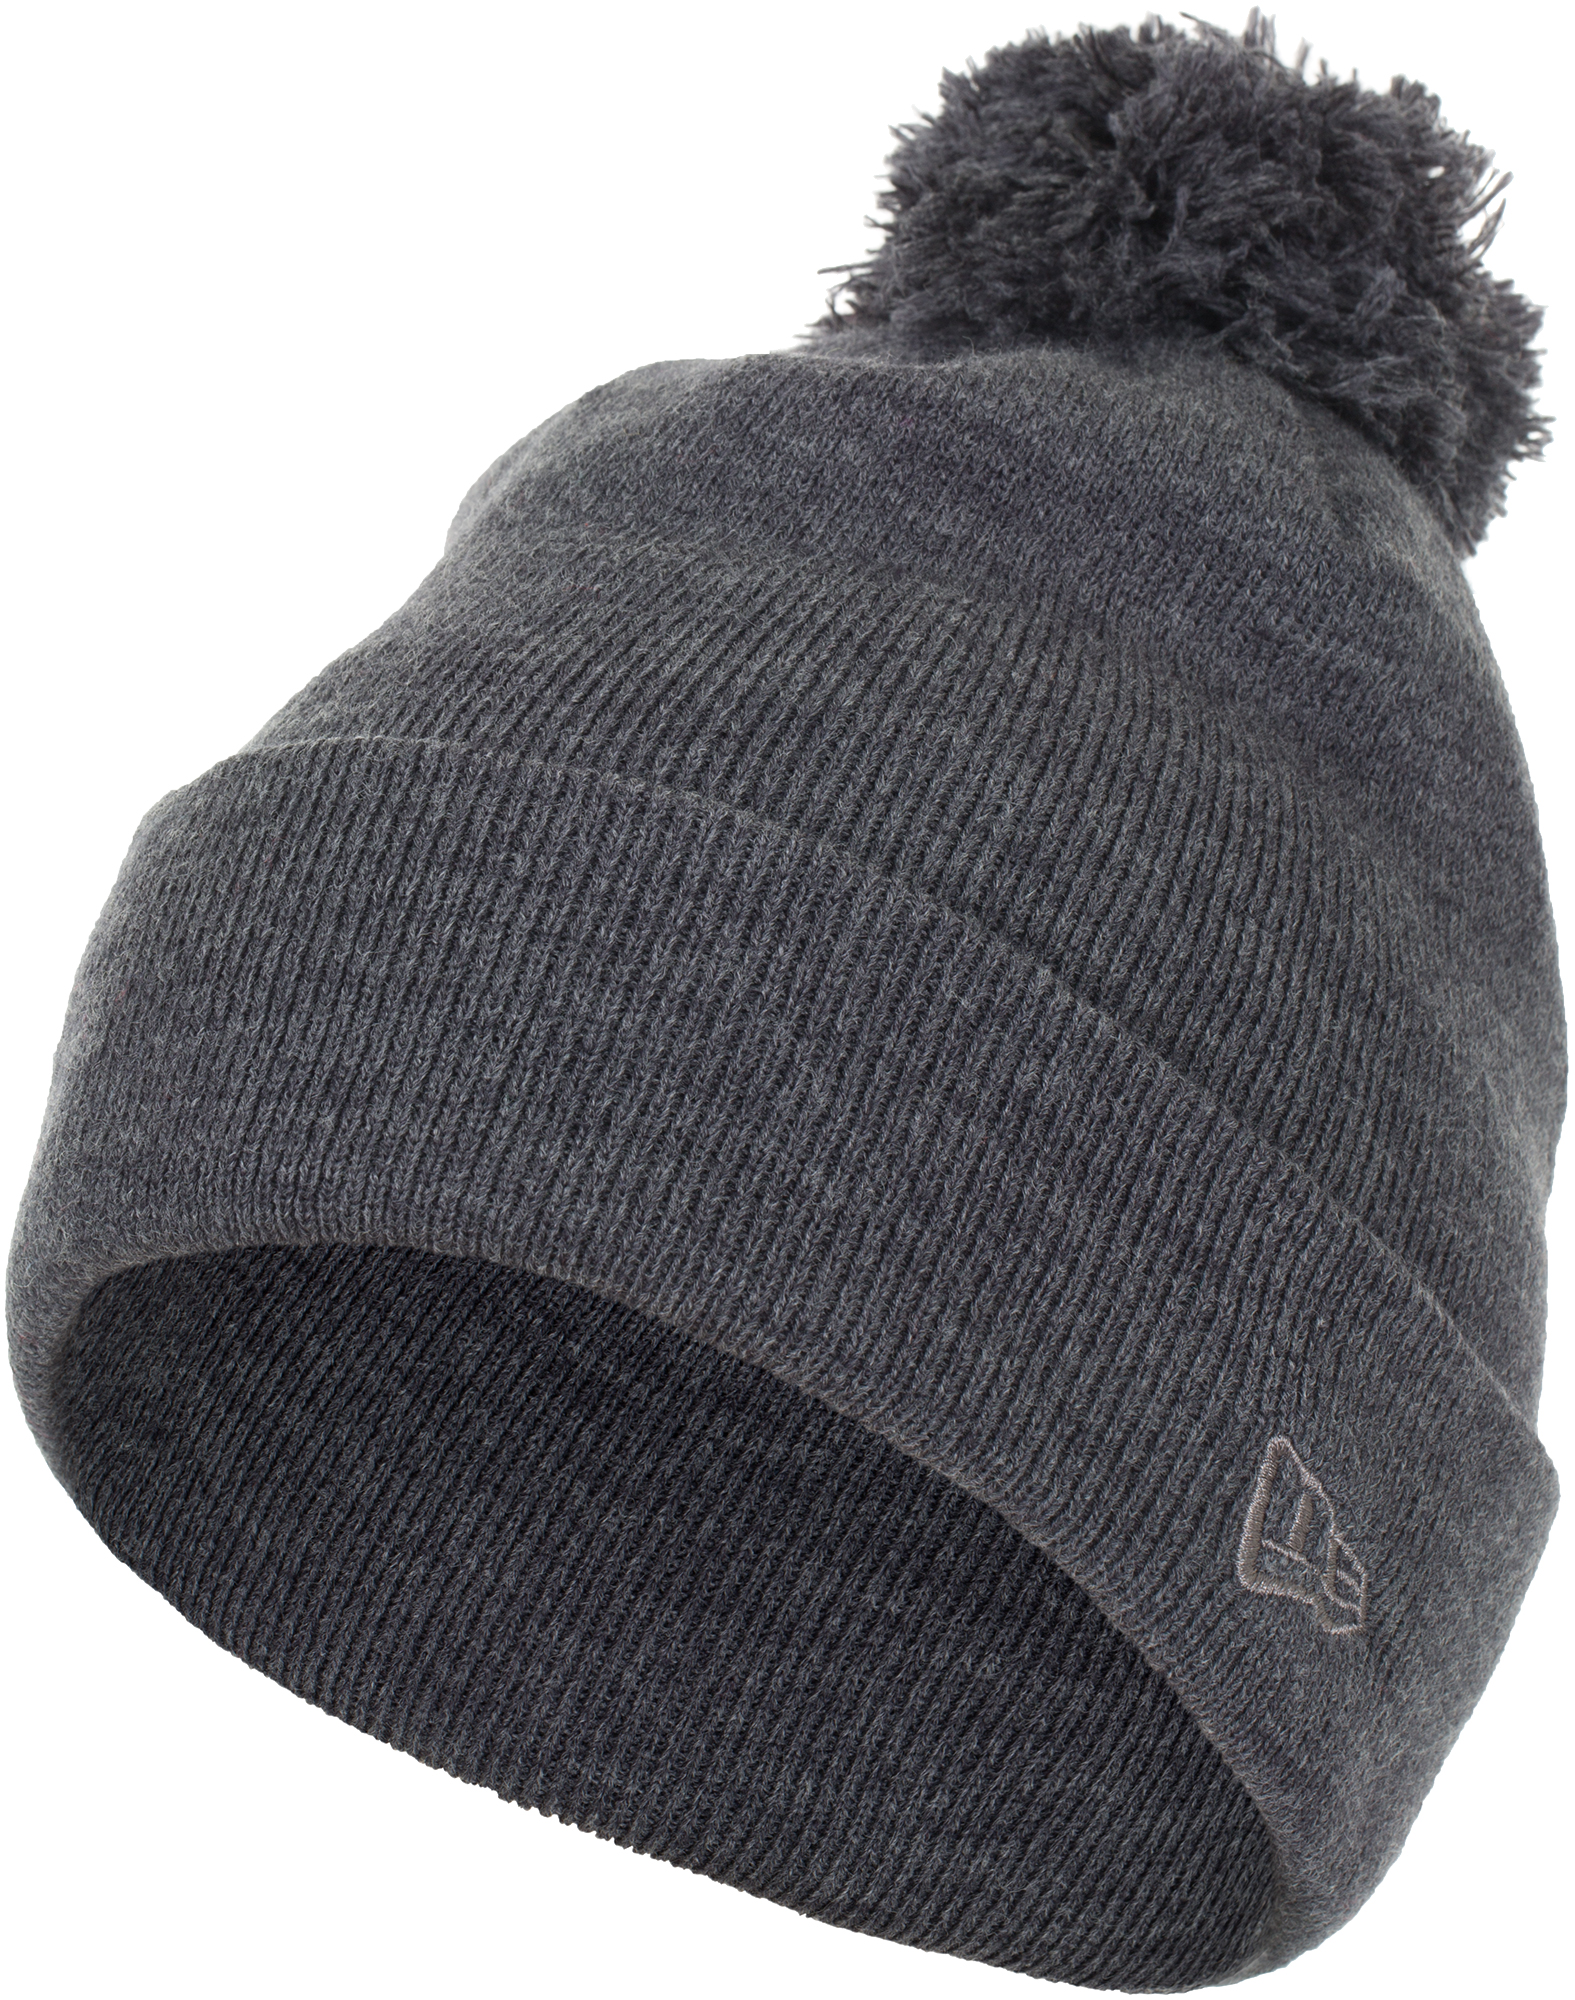 цена на New Era Шапка New Era Lic 829 Tonal Pop Cuff Bobble